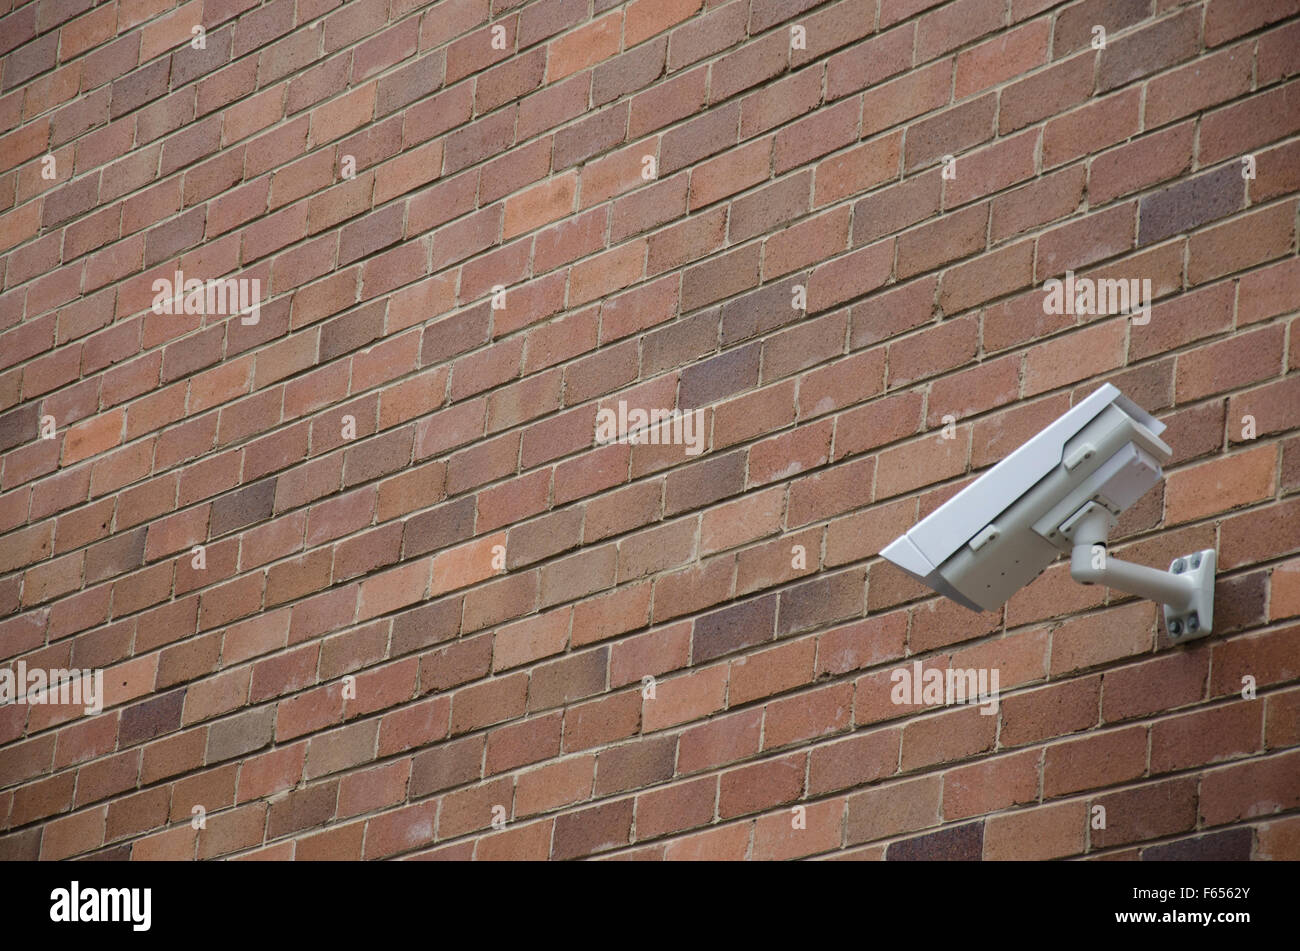 24 hour Surveillance or security CCTV camera in Sydney - Stock Image